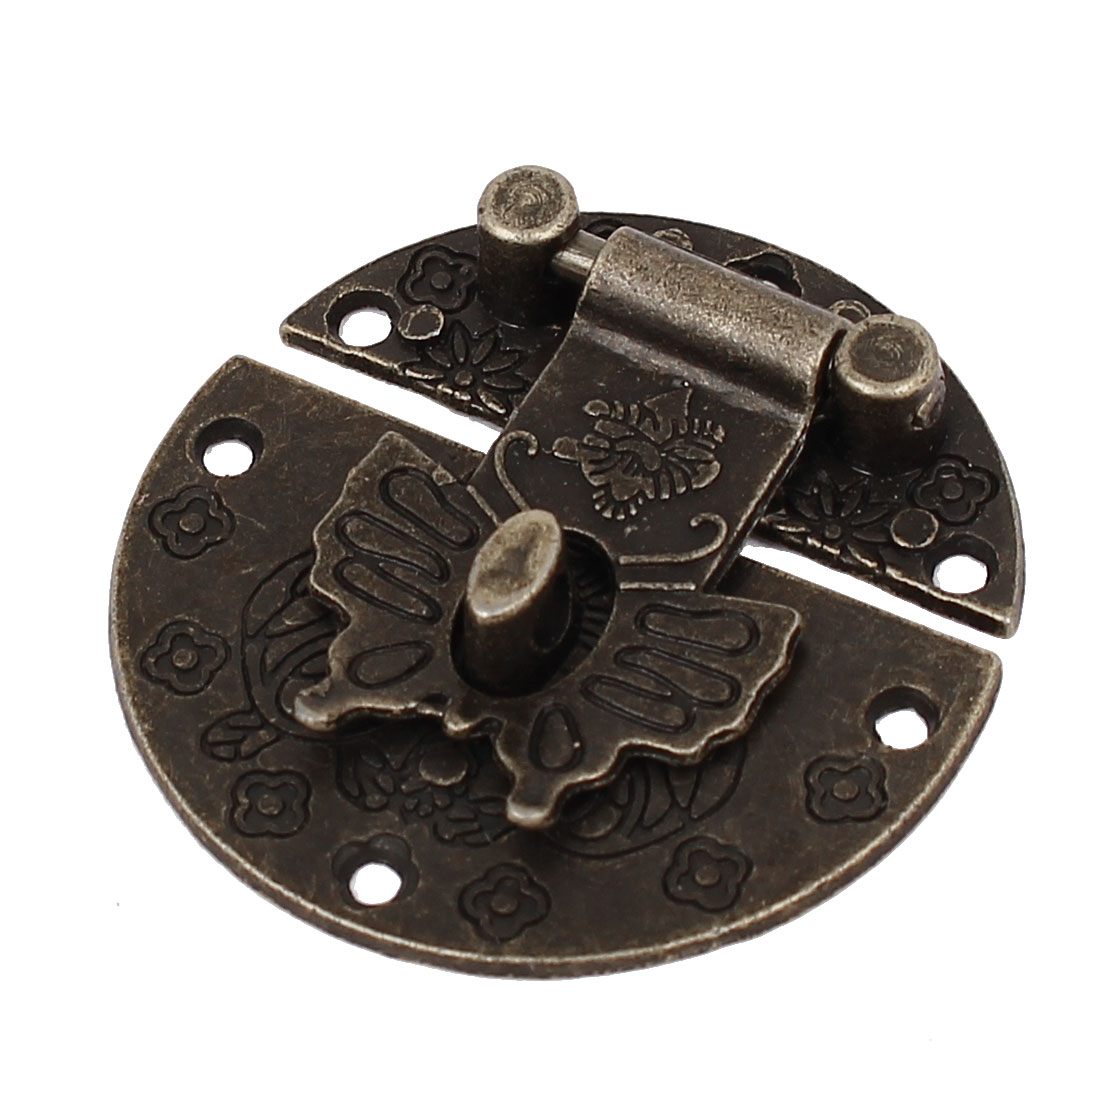 Box Suitcase Antique Style Butterfly Design Toggle Latch Catch Hasp Lock